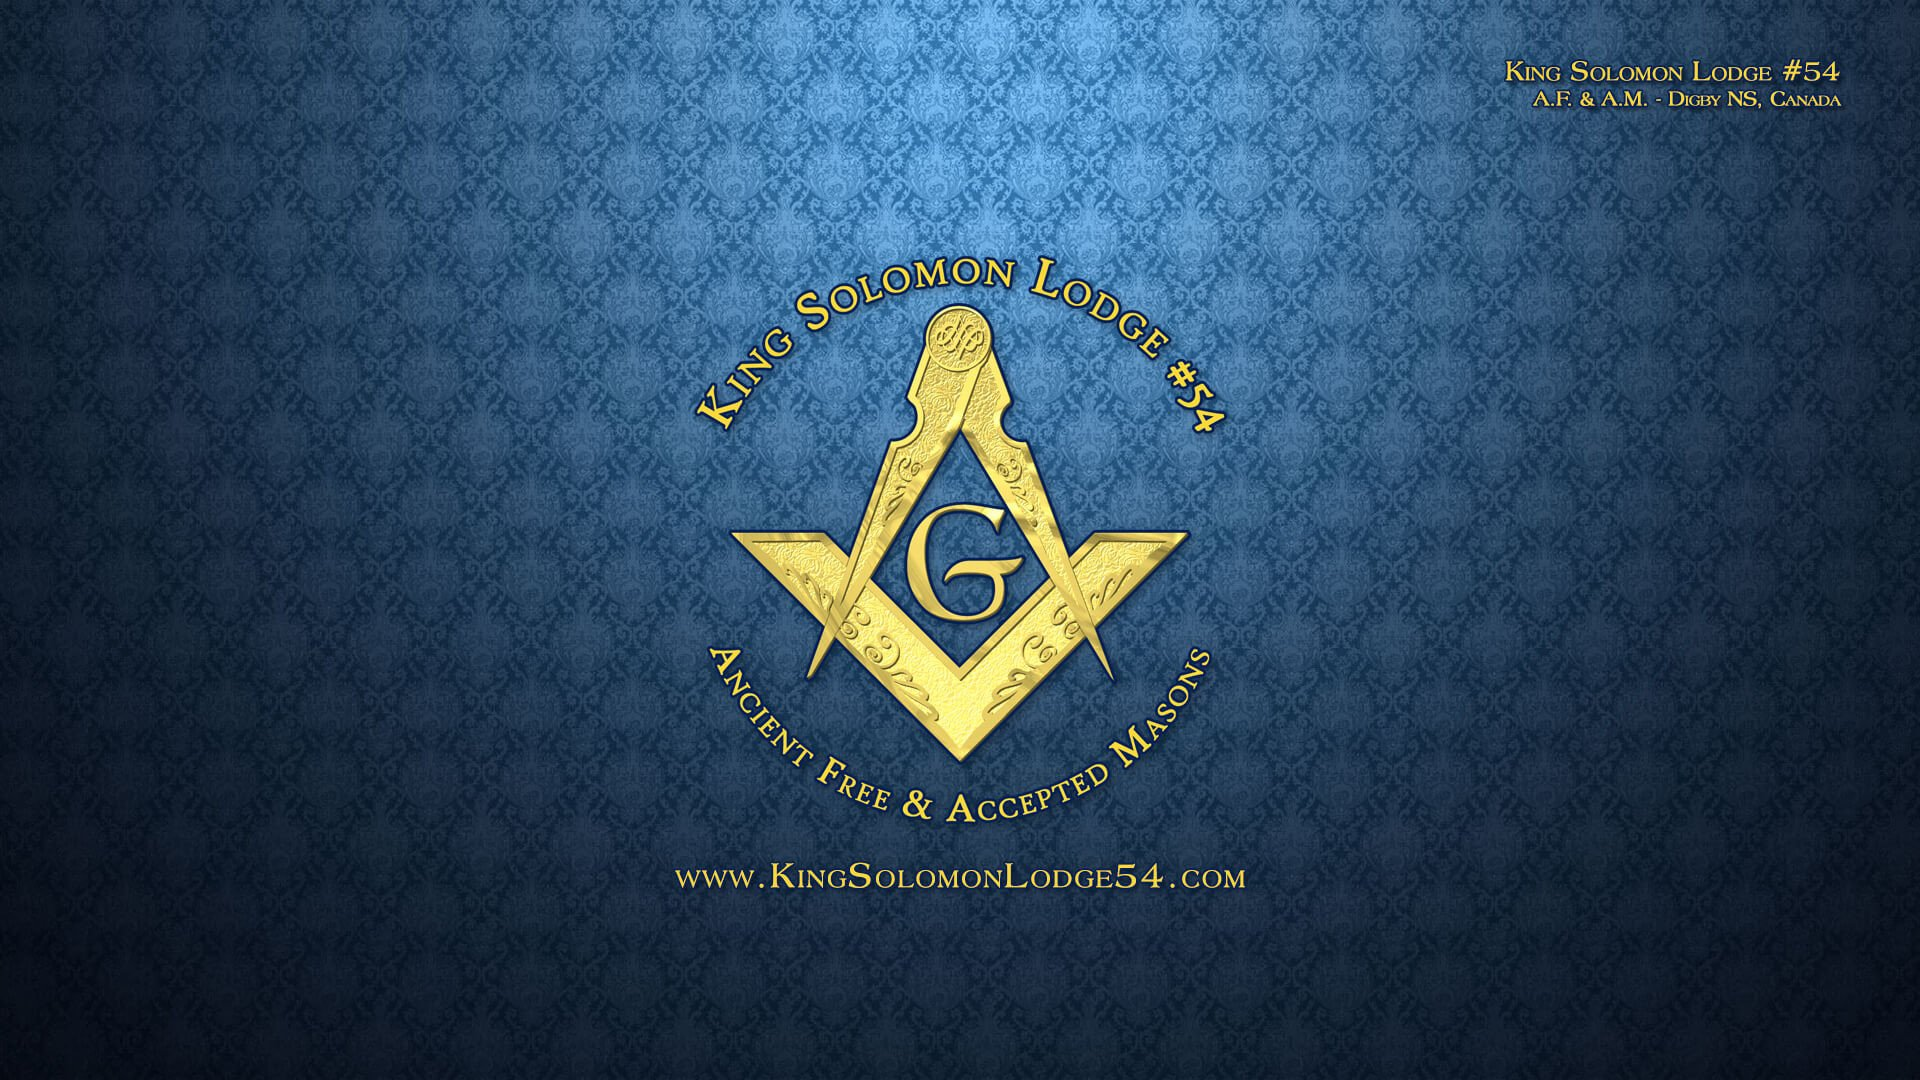 download Freemason Wallpaper HD 59 images [1920x1080] for 1920x1080